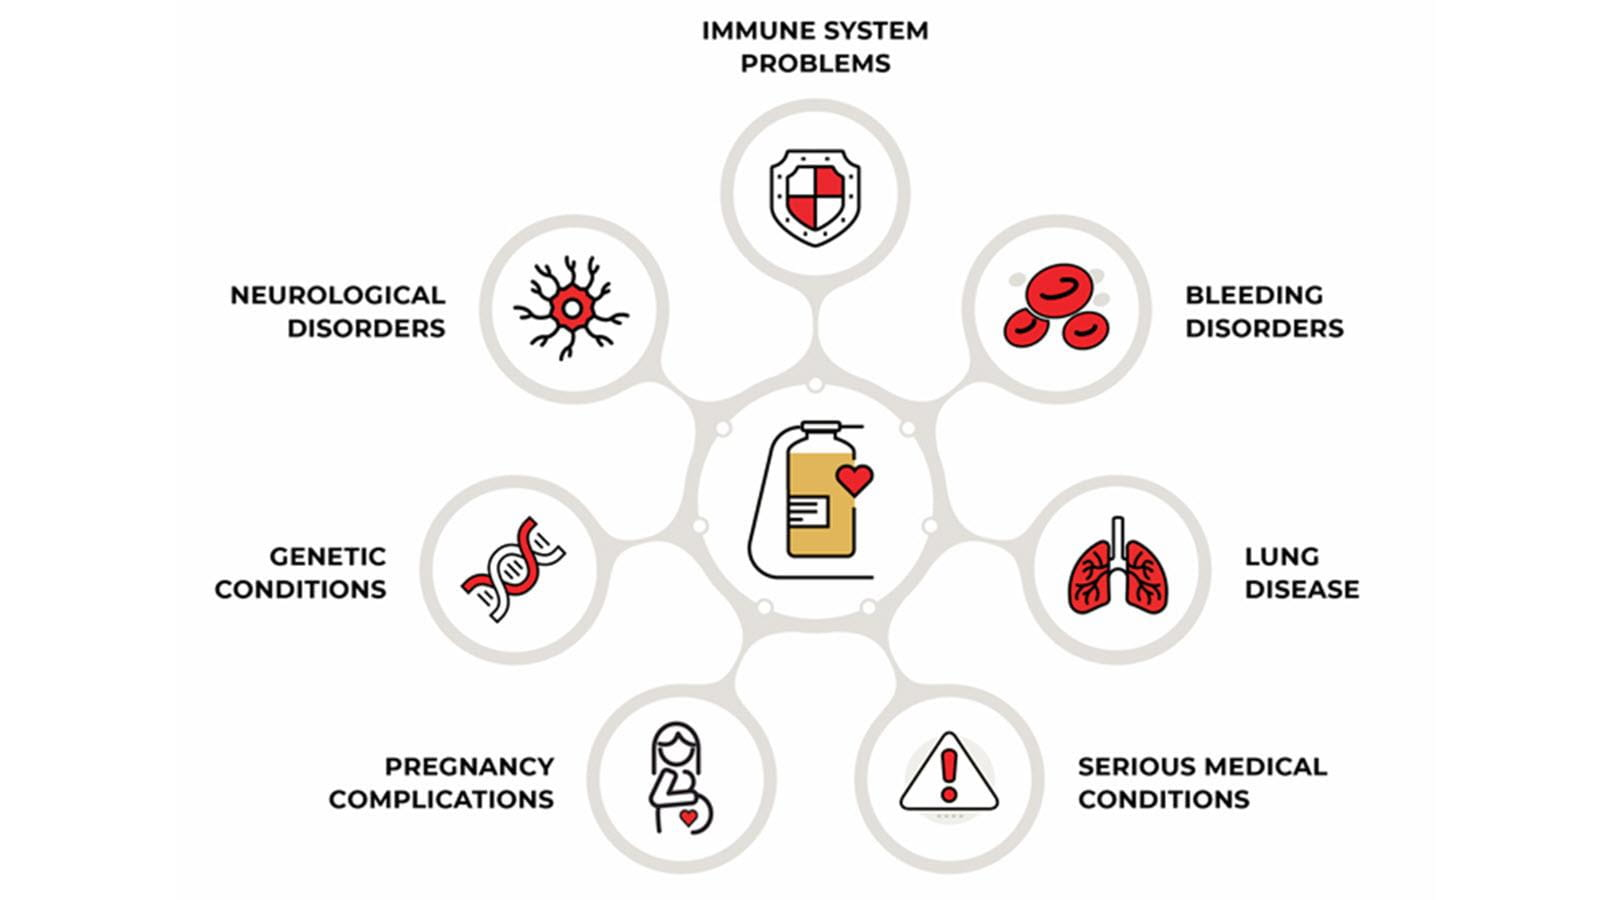 portion of infographic showing that plasma is used for multiple health problems, including immune system problems